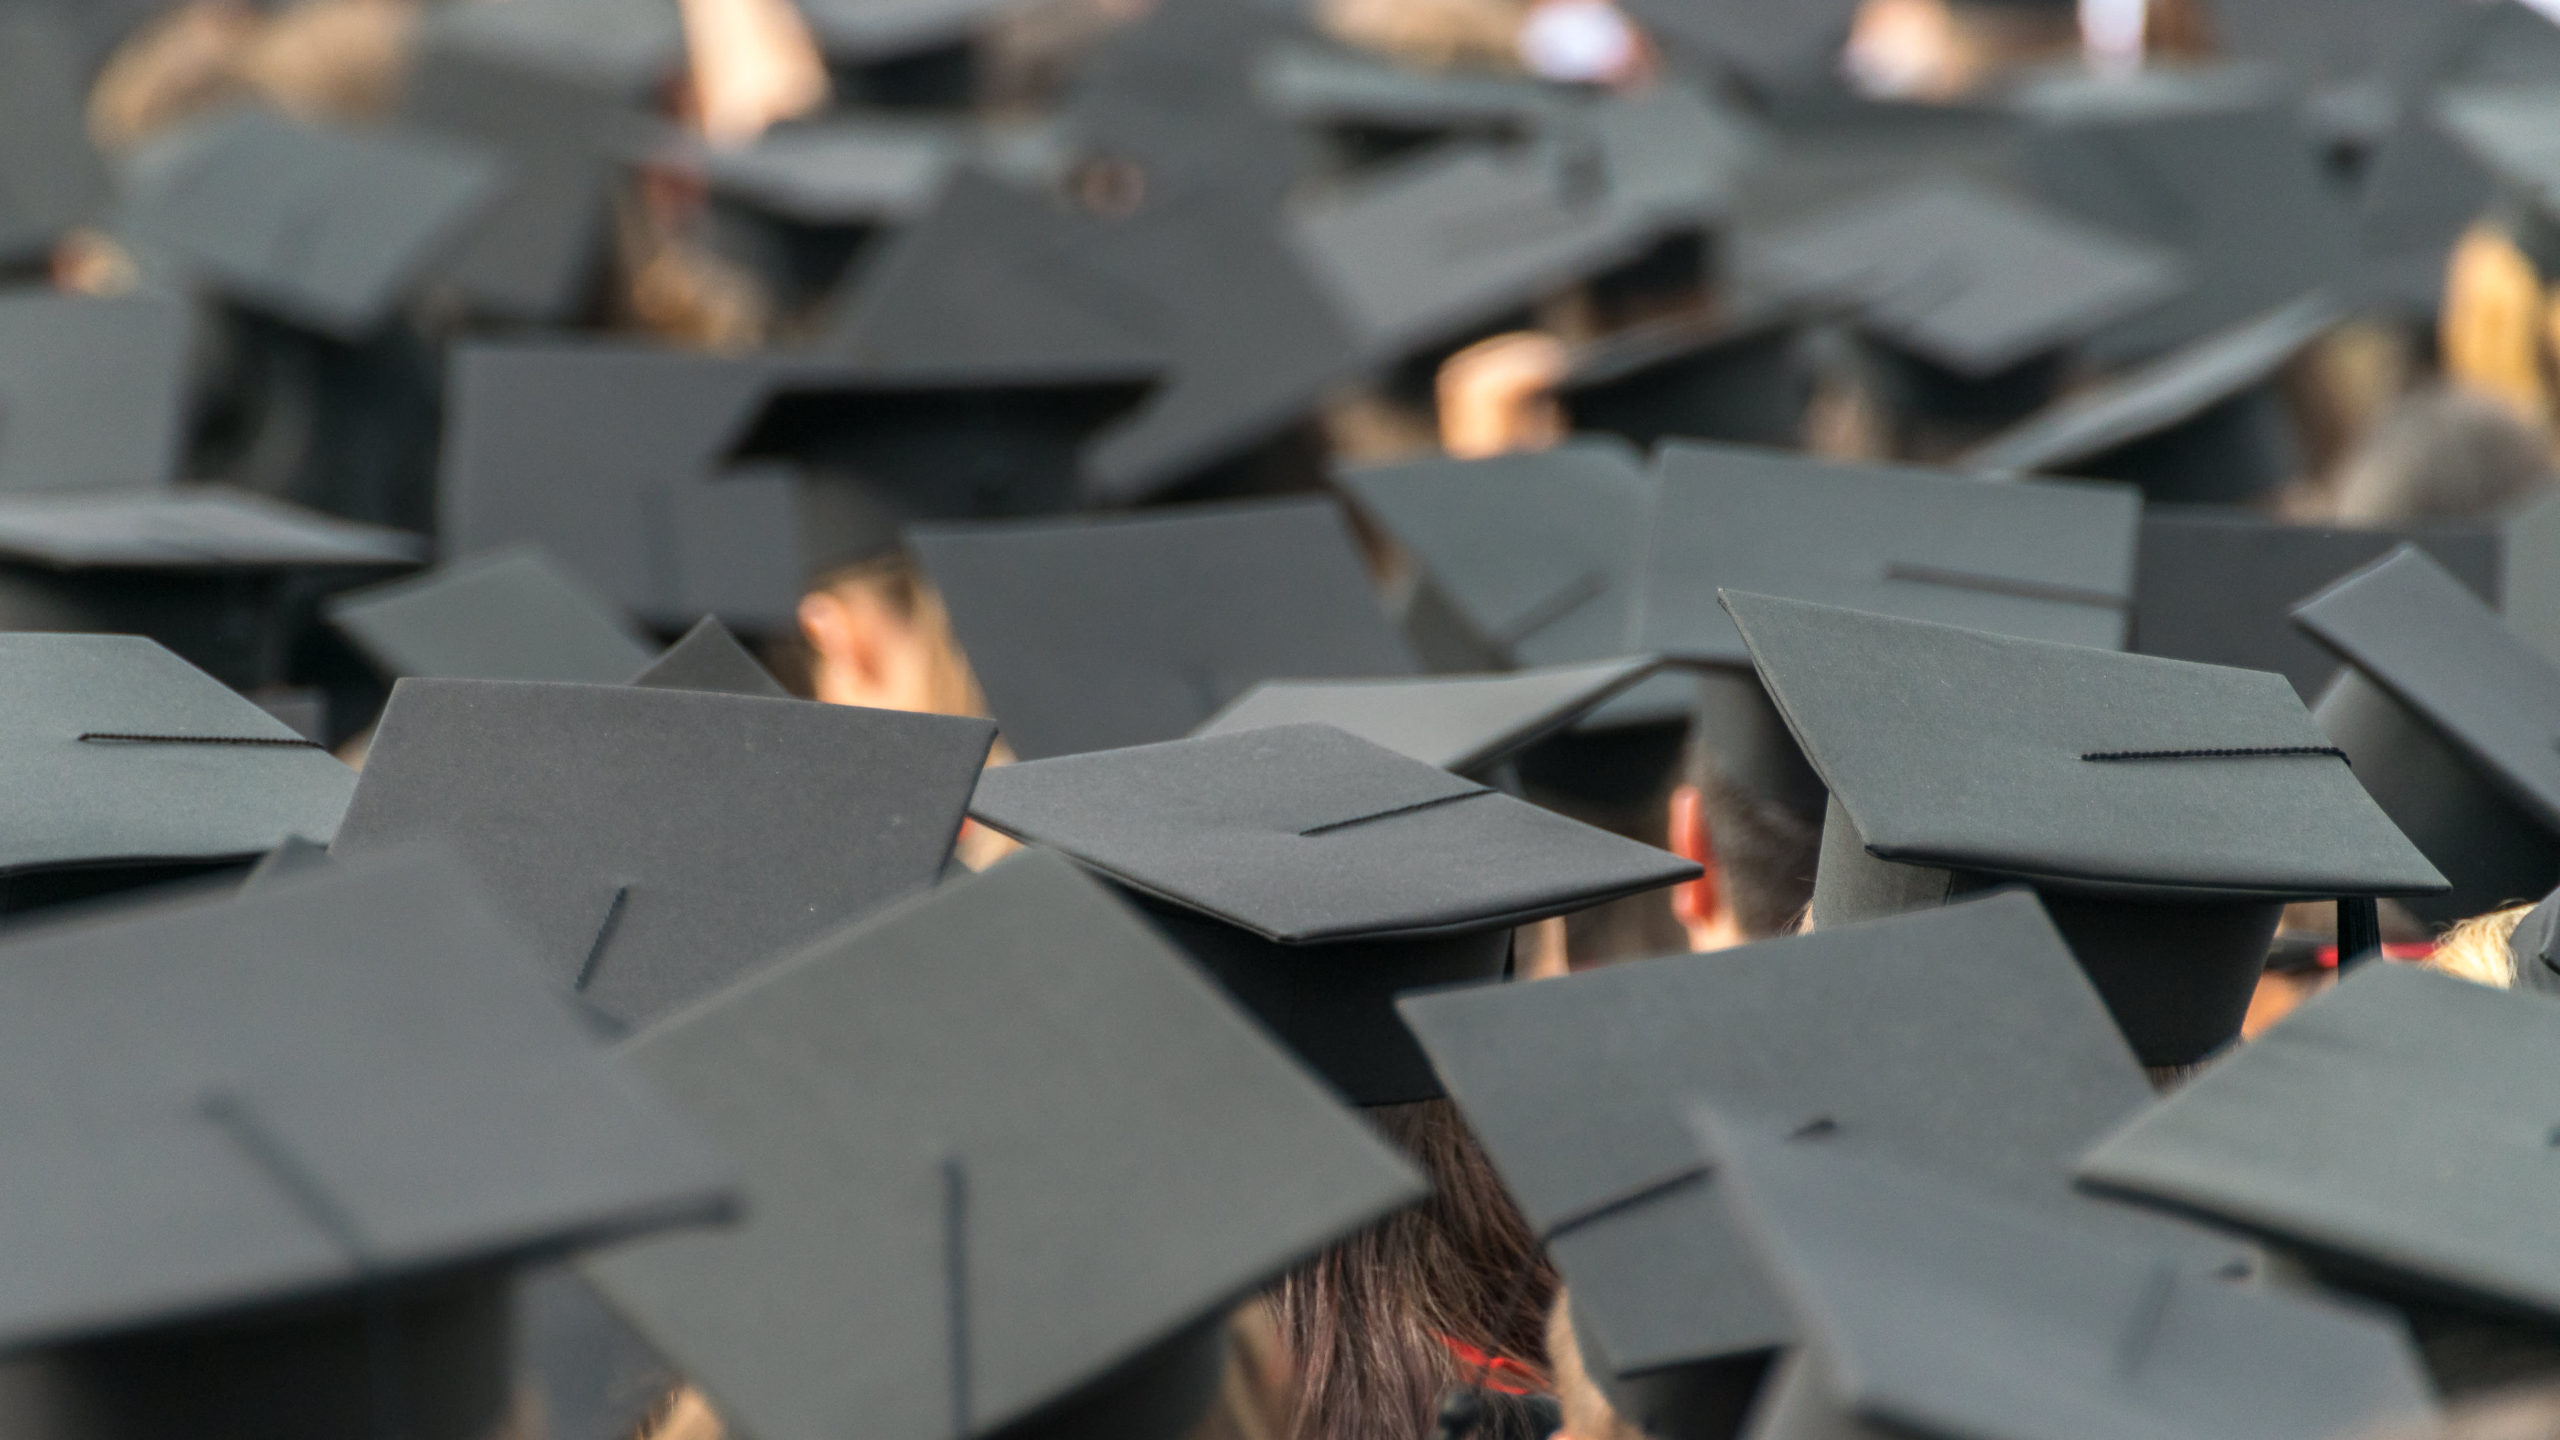 Gen Z unaware of Covid-19 student loan relief programs, study finds